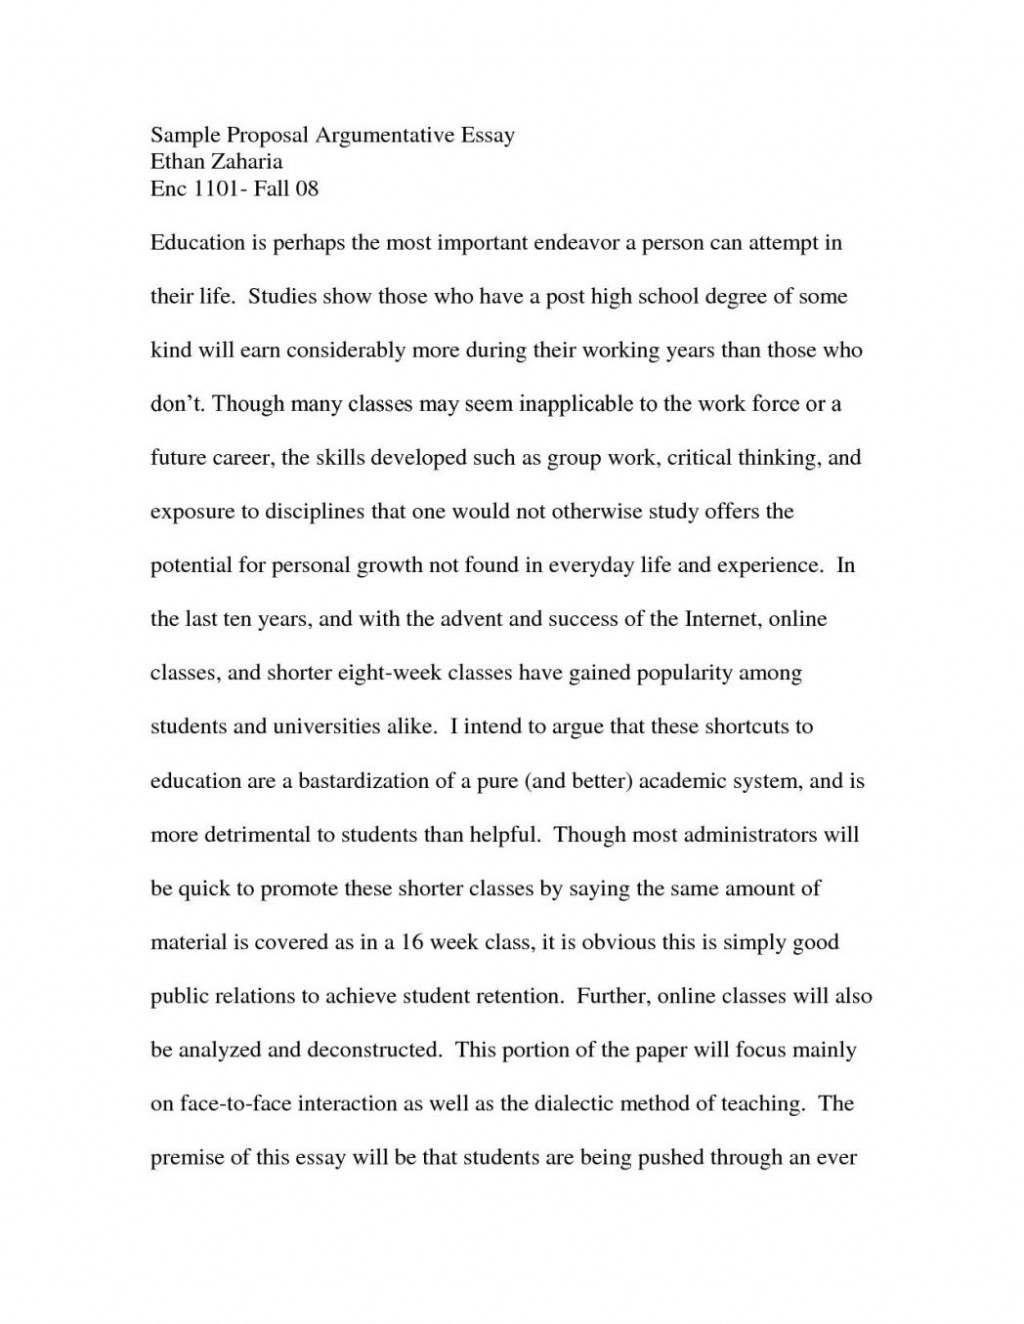 015 Examples Of Argumentative Essays Essay Example Research Paper Awesome Collection High School Sample Picture Free Nice Exa Samples For Paragraph Dreaded Middle Schoolers Topics College Students Large